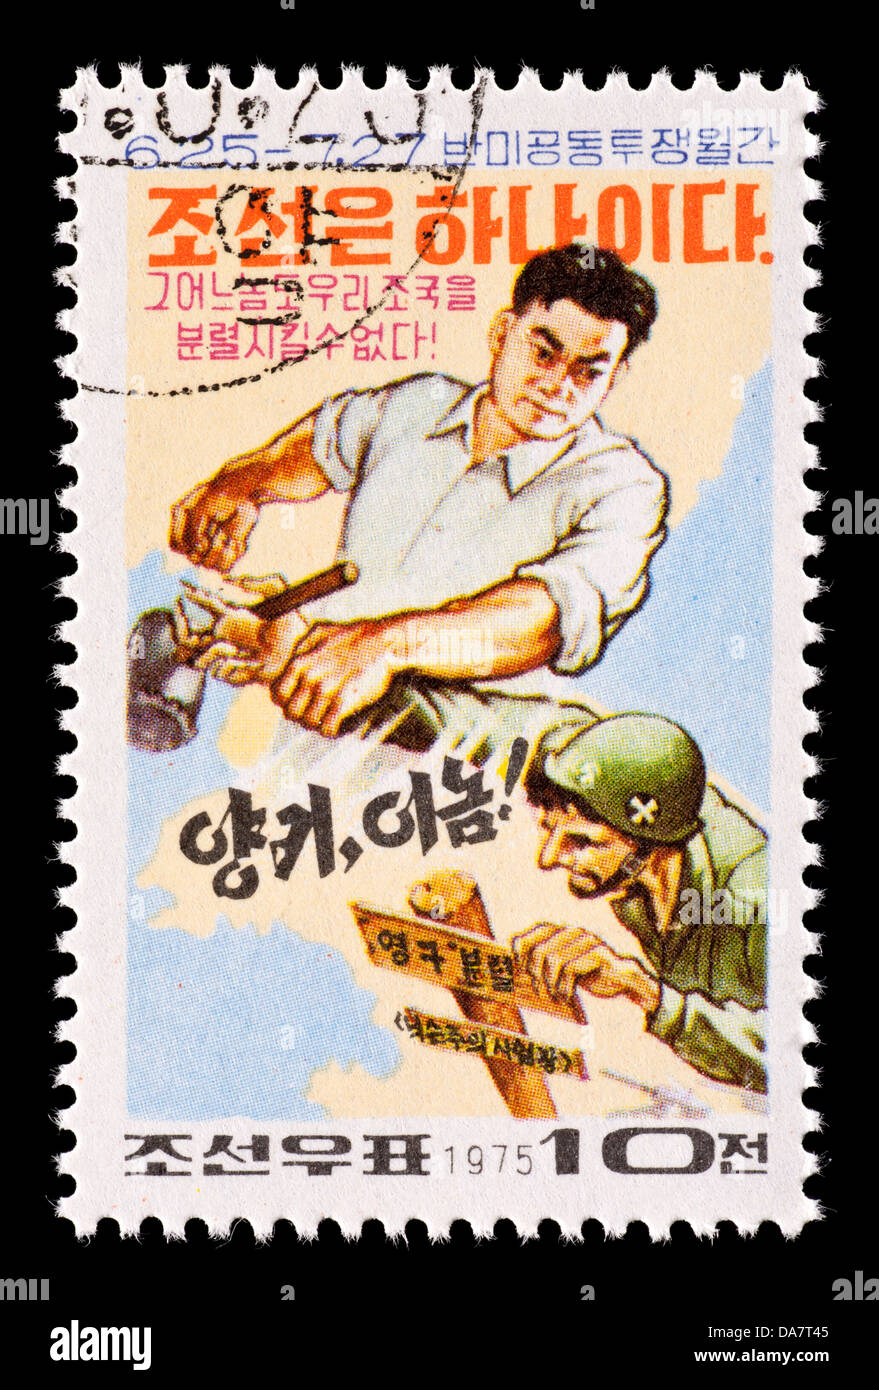 Postage stamp from North Korea for the month of anti-US joint struggle. Stock Photo